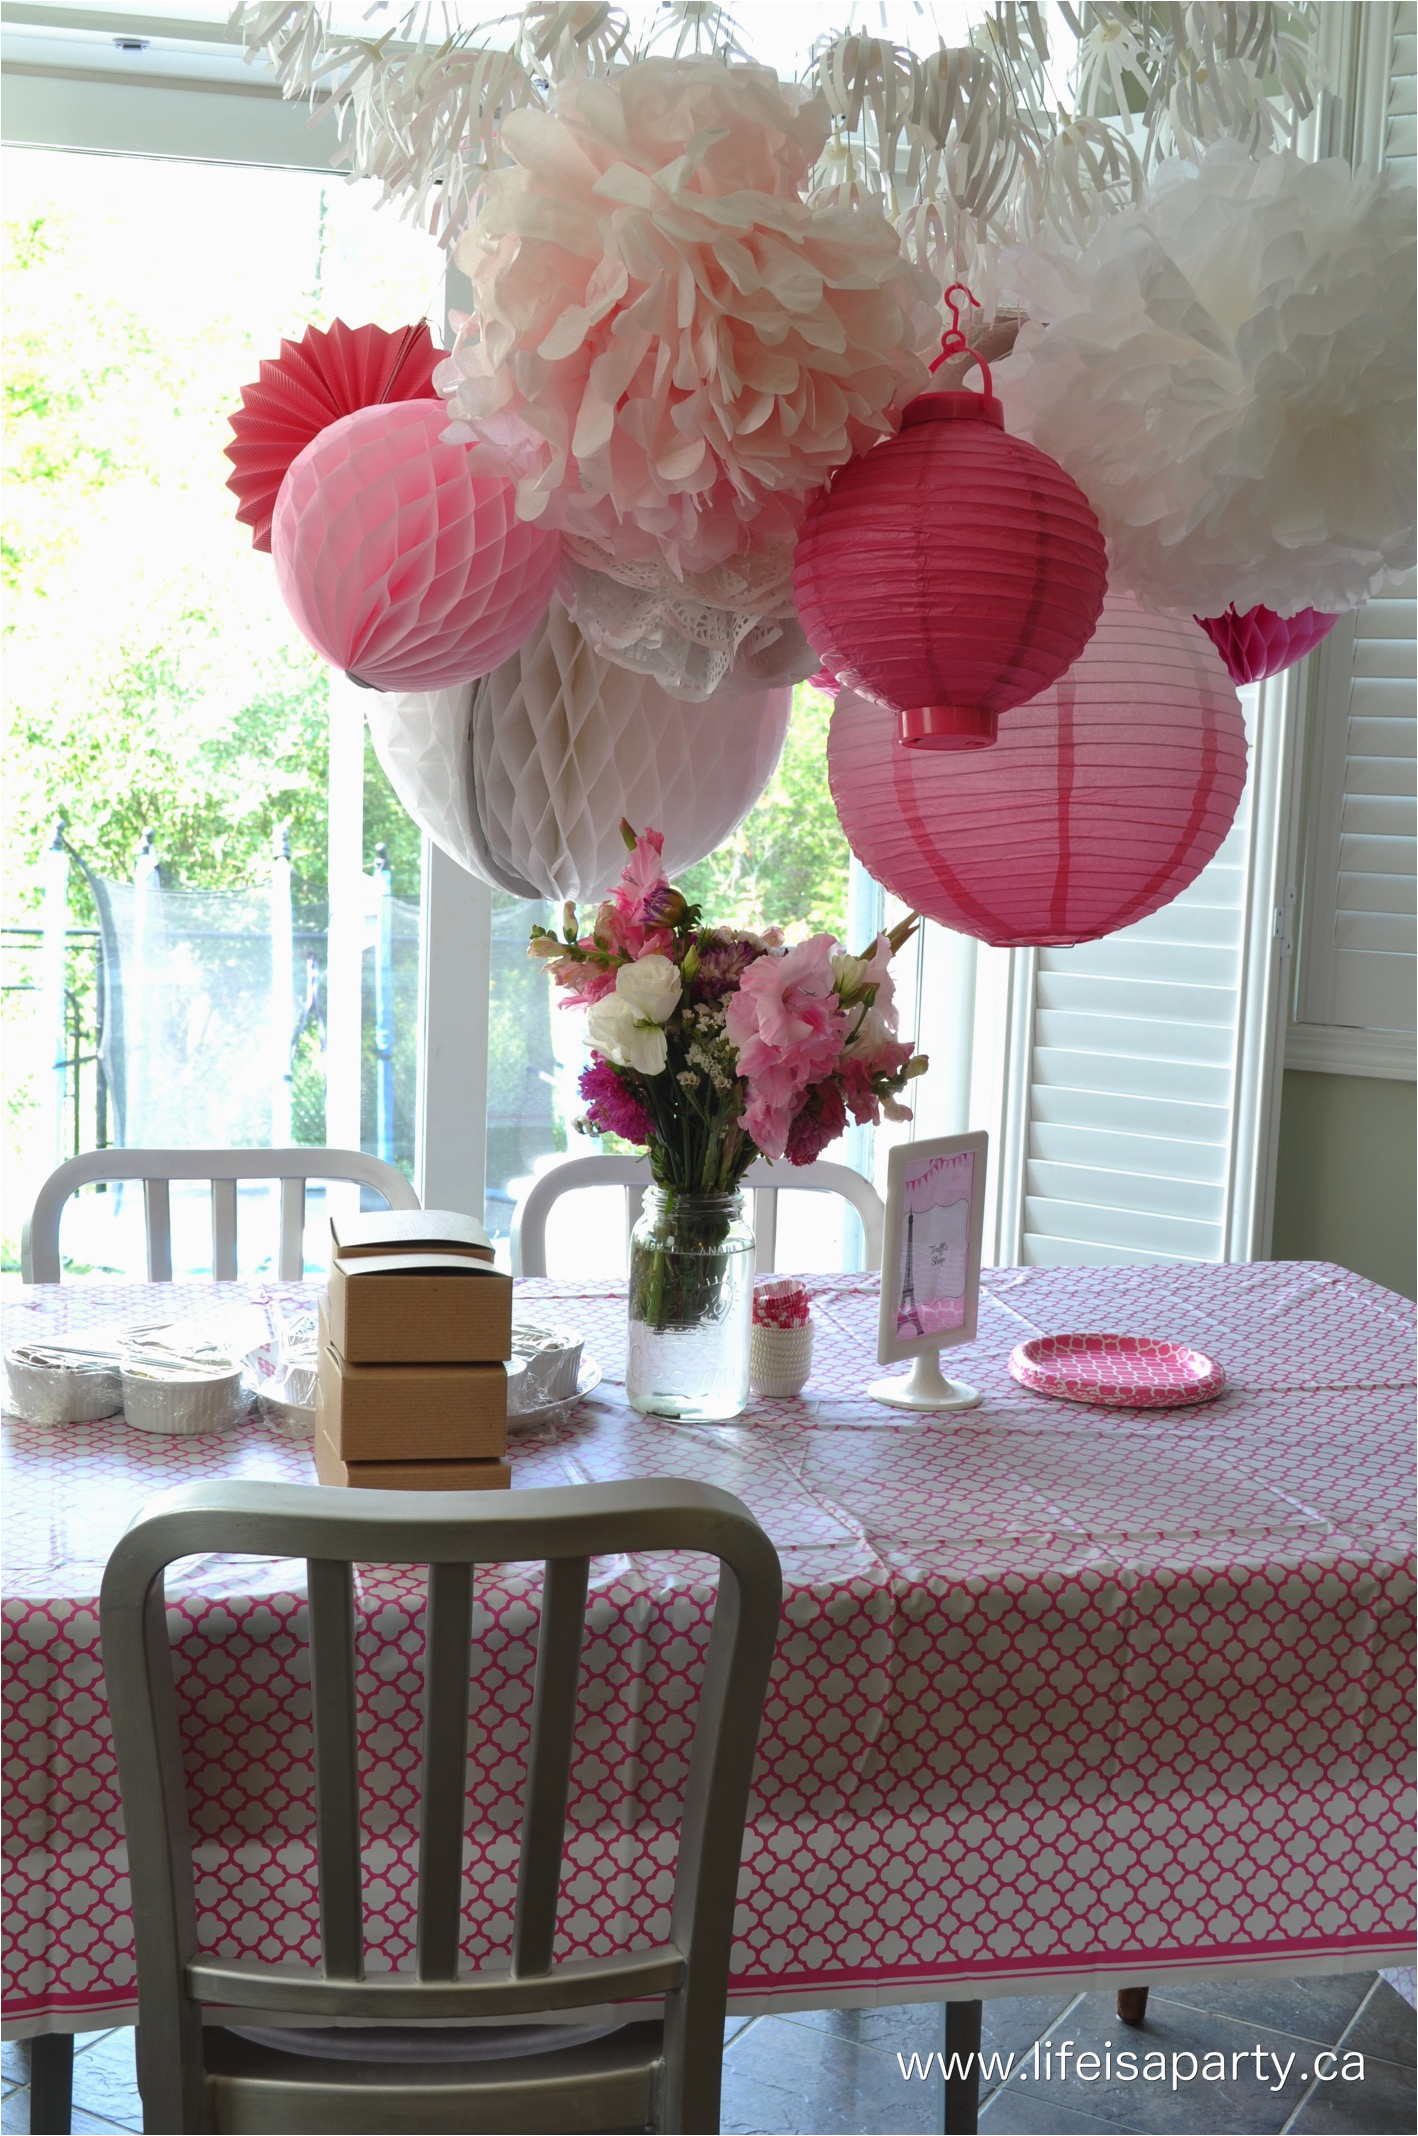 Paris themed Birthday Party Decorations Paris Birthday Party Part One Party Activities and